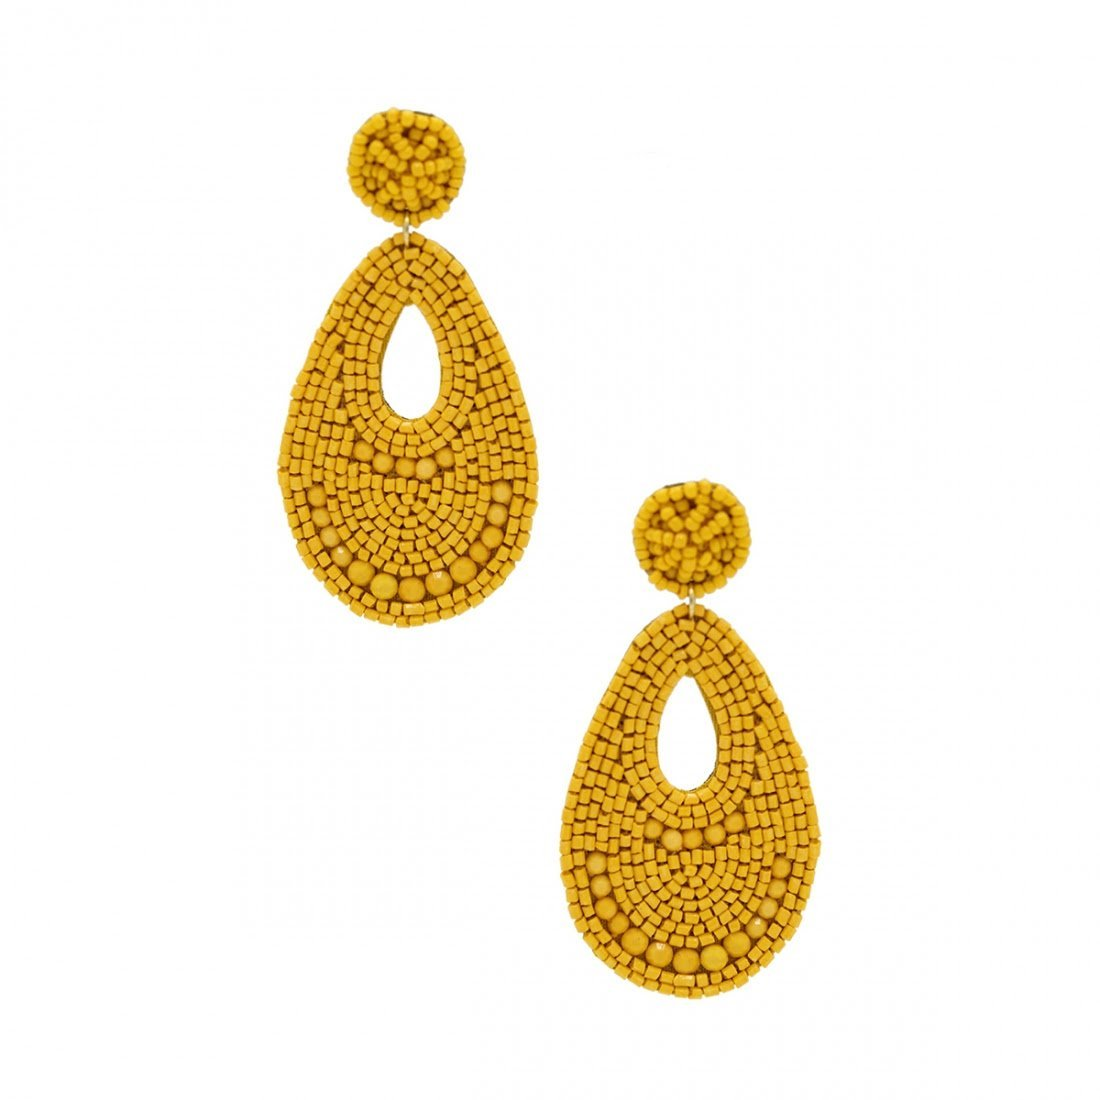 Skylight Earrings - Yellow from 8 Other Reasons